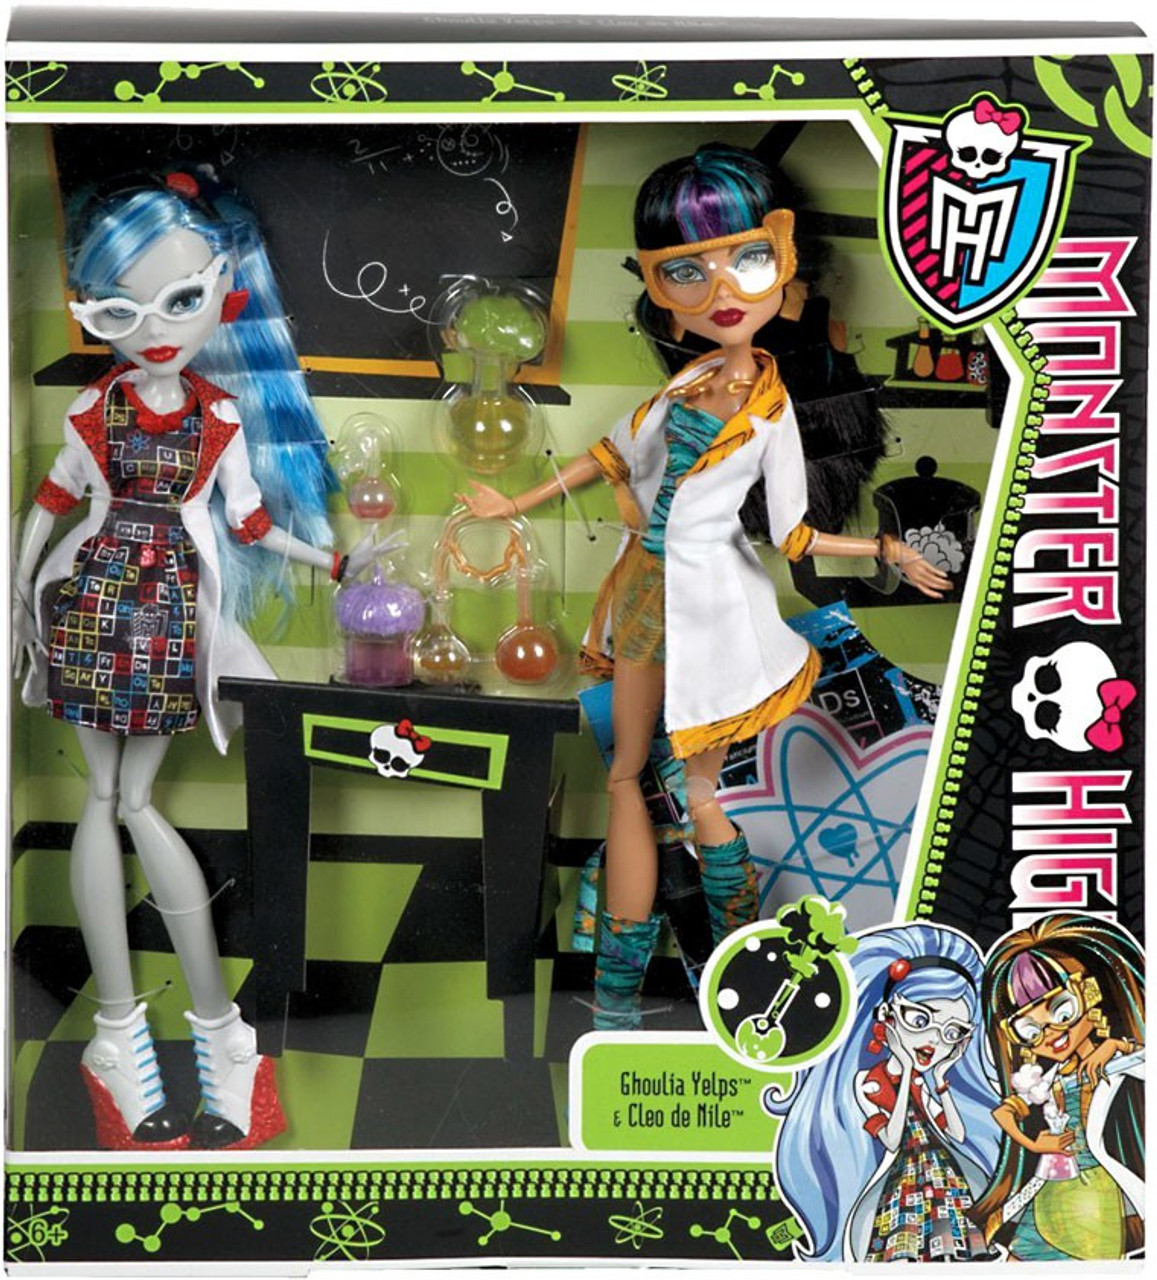 49b450fa56c3 Monster High Classroom Mad Science Lab Partners Cleo de Nile   Ghoulia  Yelps 10.5-Inch